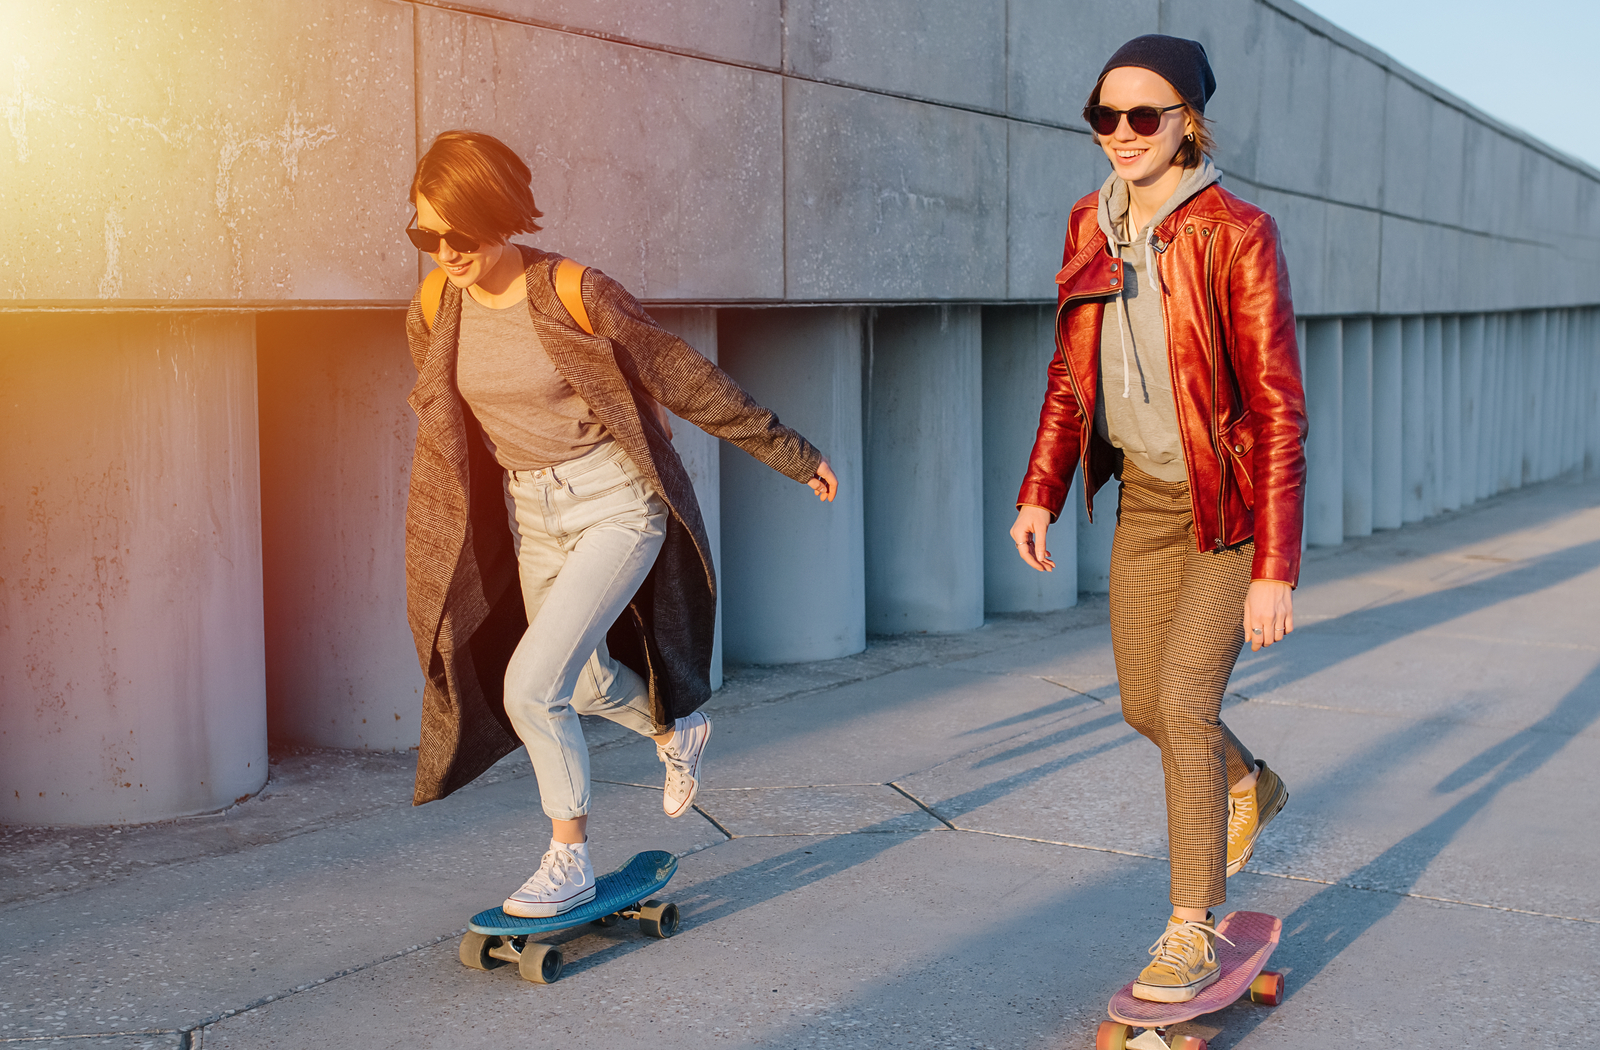 2 women longboarding by a concrete wall wearing sunglasses and smiling